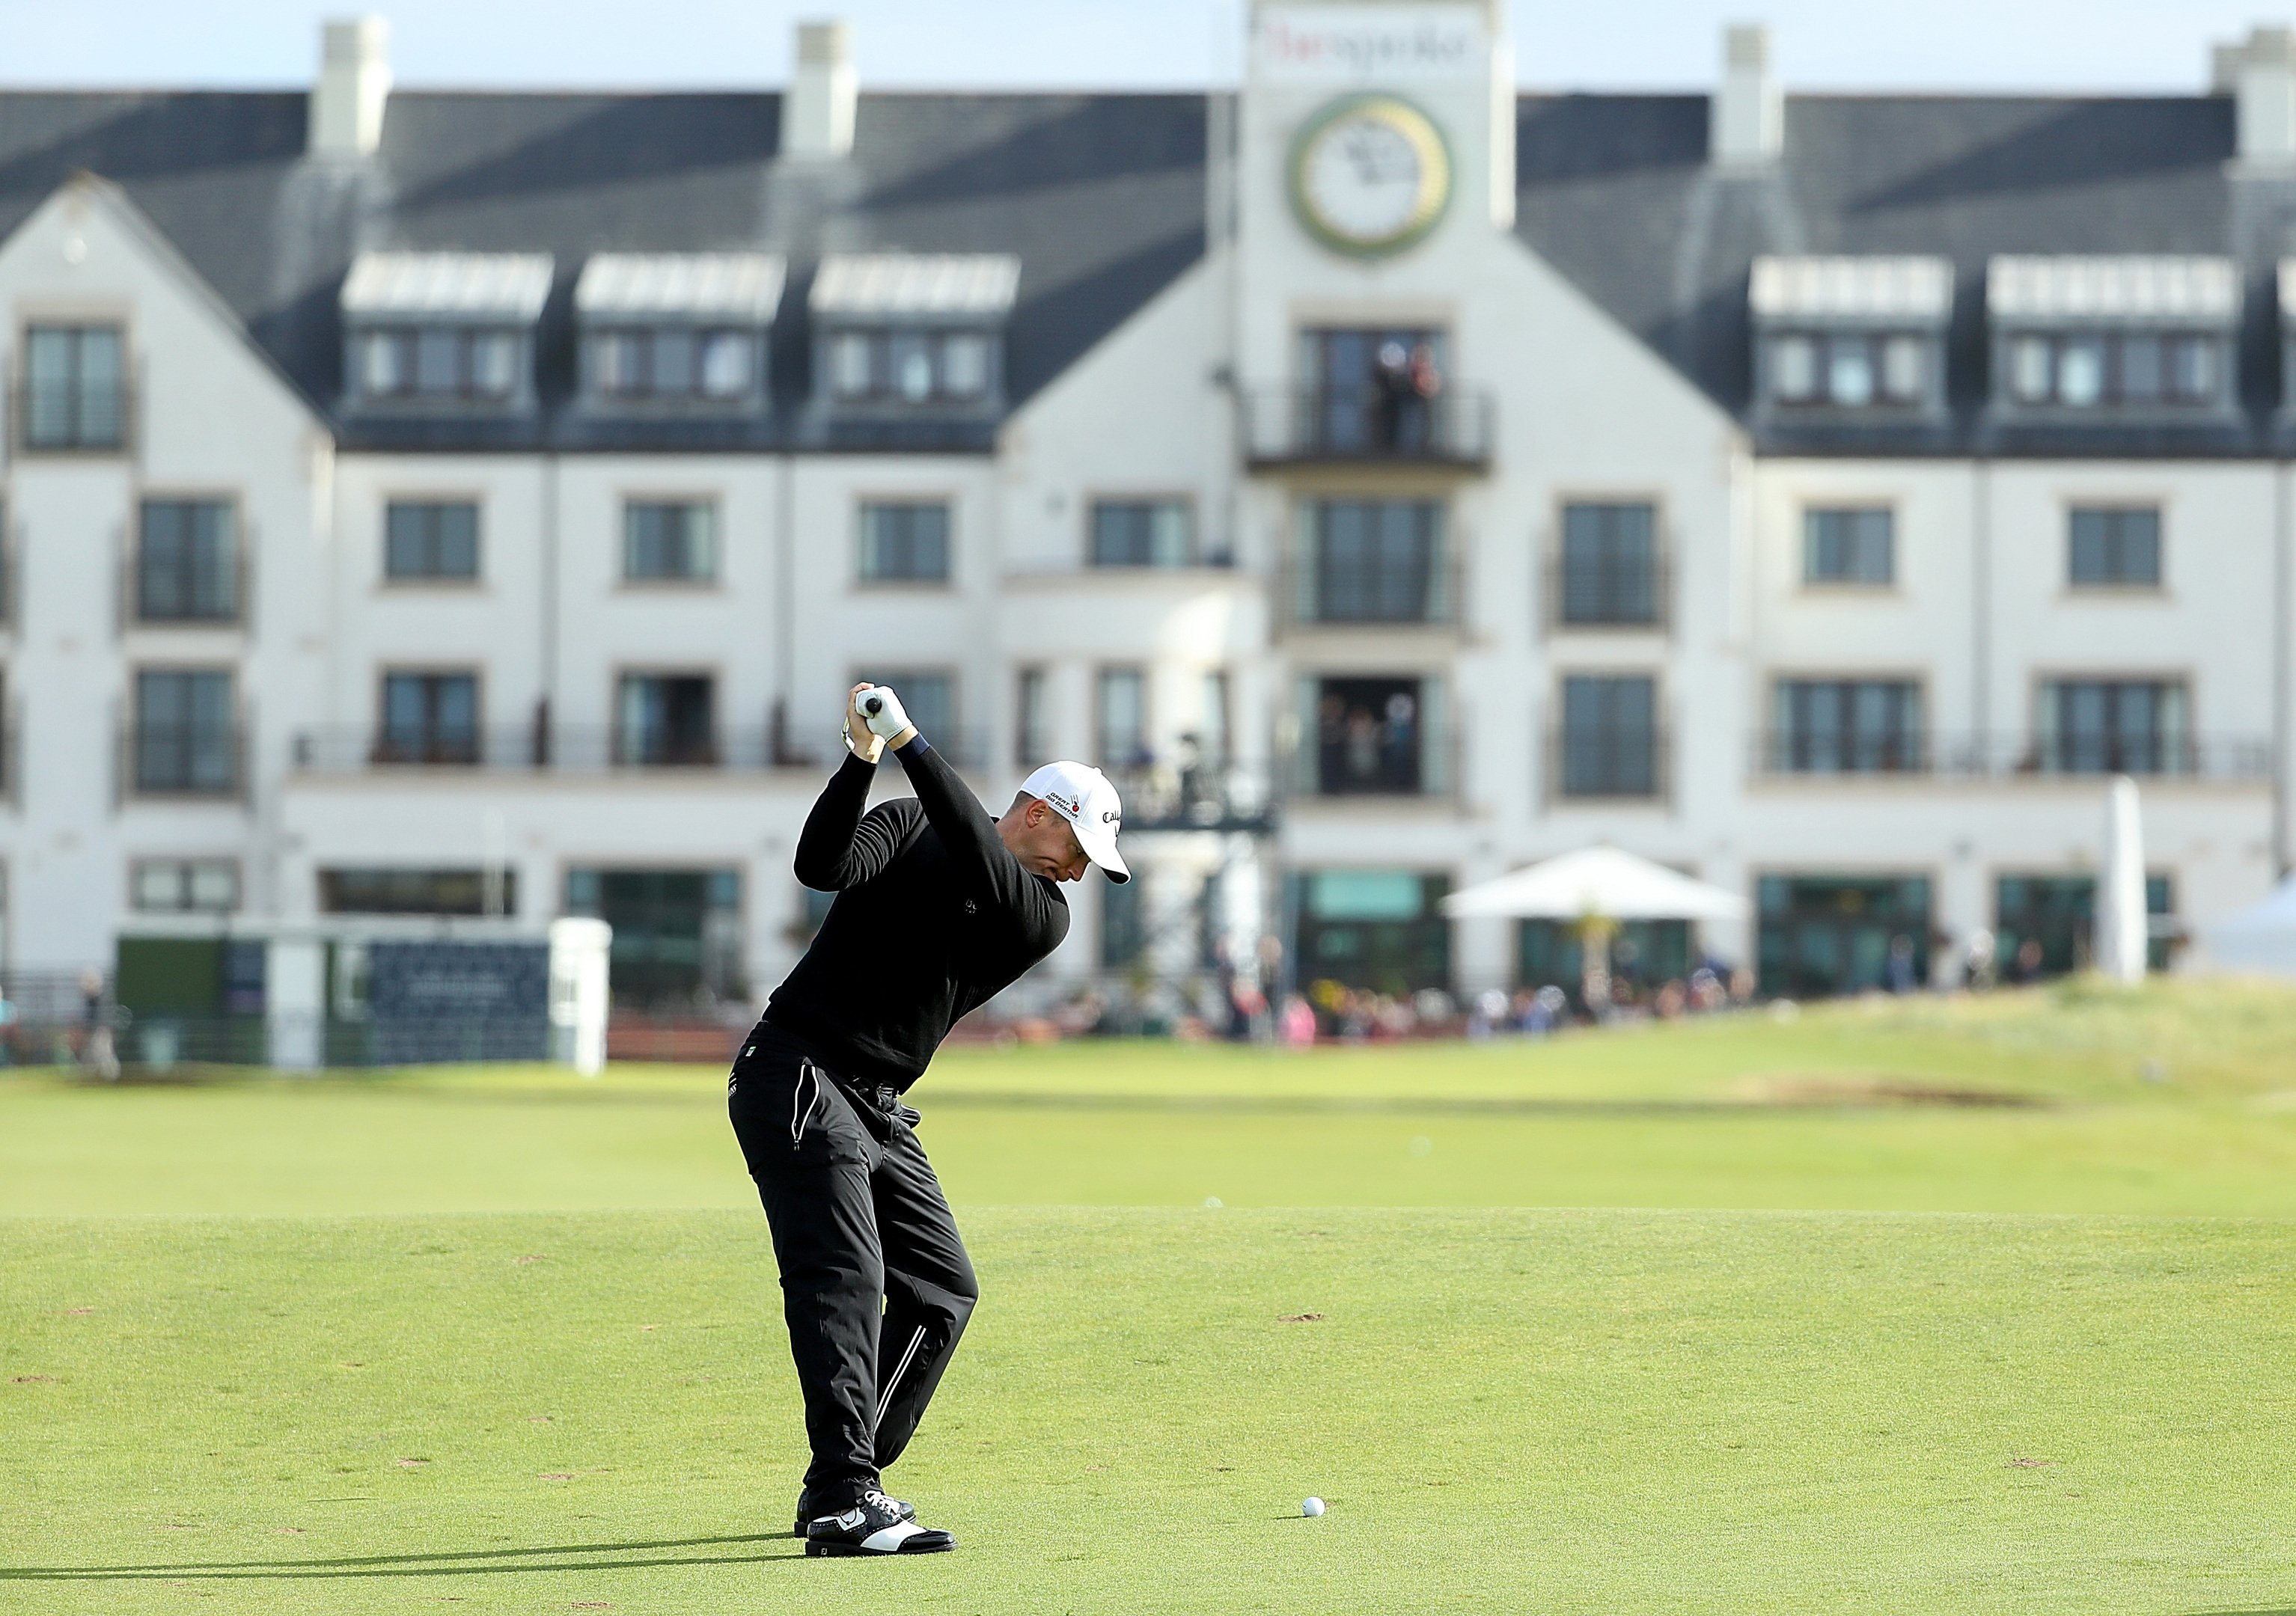 CARNOUSTIE, SCOTLAND - OCTOBER 06:  Alex Noren of Sweden plays his second shot to the 18th hole during the first round of the Alfred Dunhill Links Championship on the Championship Course, Carnoustie on October 6, 2016 in Carnoustie, Scotland.  (Photo by Richard Heathcote/Getty Images)